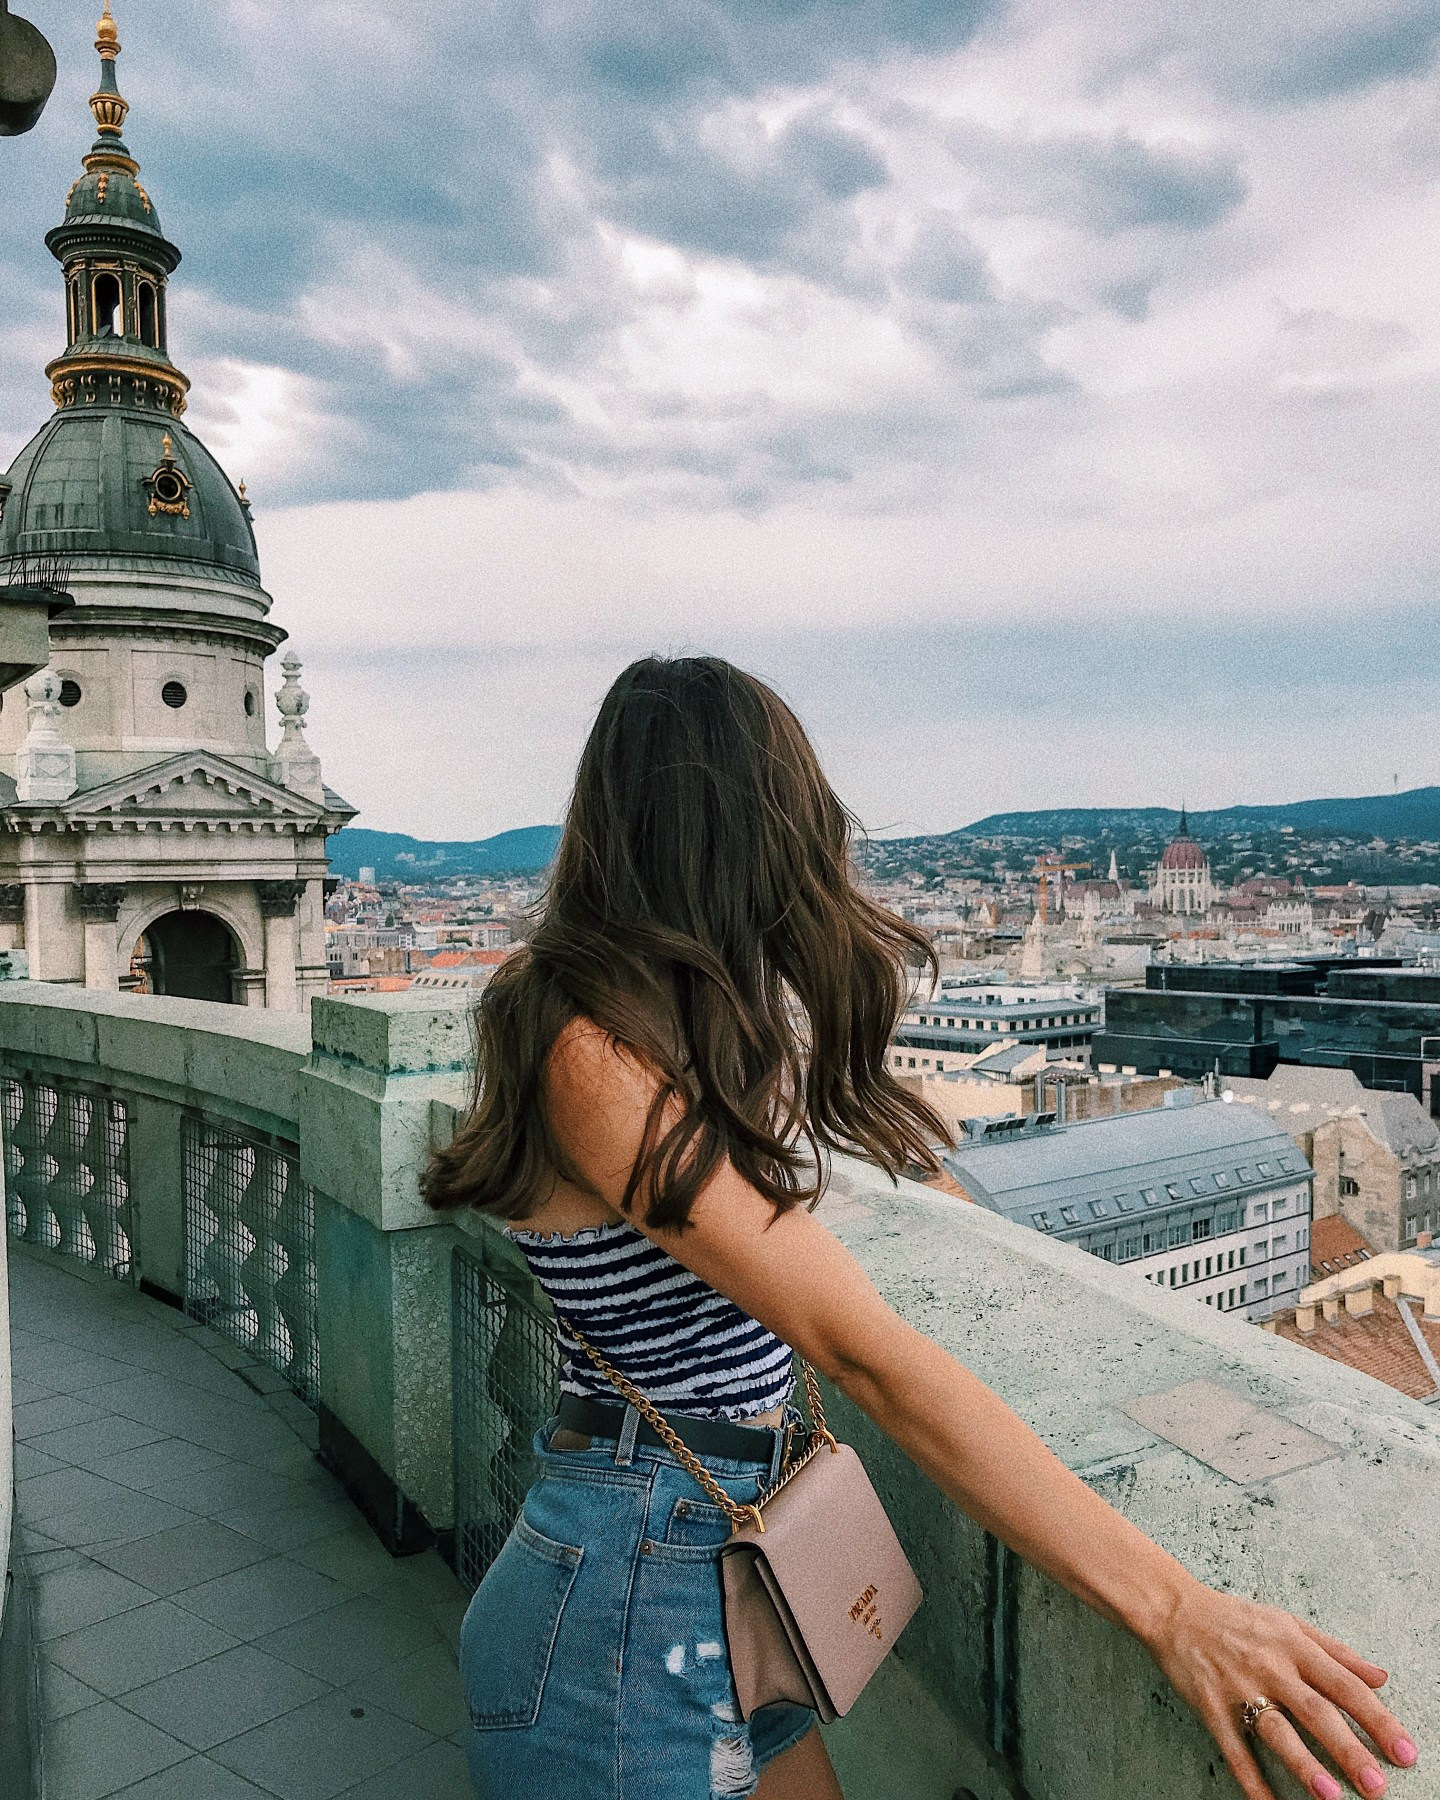 budapest, budapest travel guide, best places to go in budapest, best restaurants in Budapest, best bars in budapest, niamh O'Sullivan